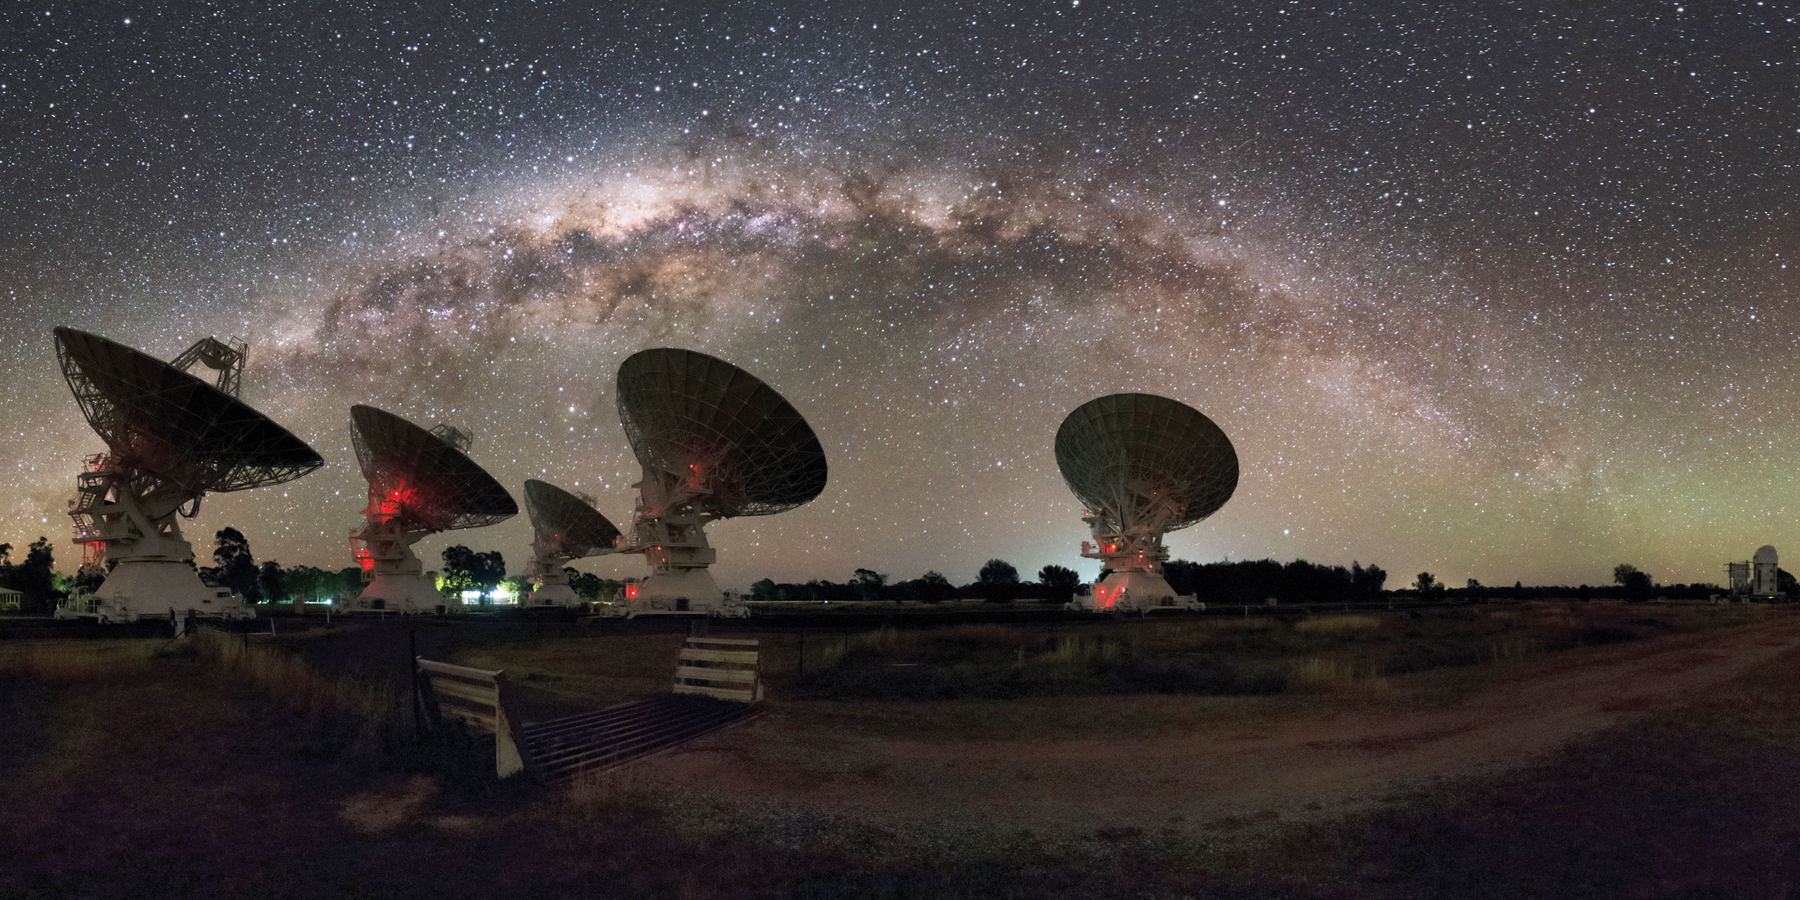 Invisible Space 'Noodles' May Lurk in the Milky Way